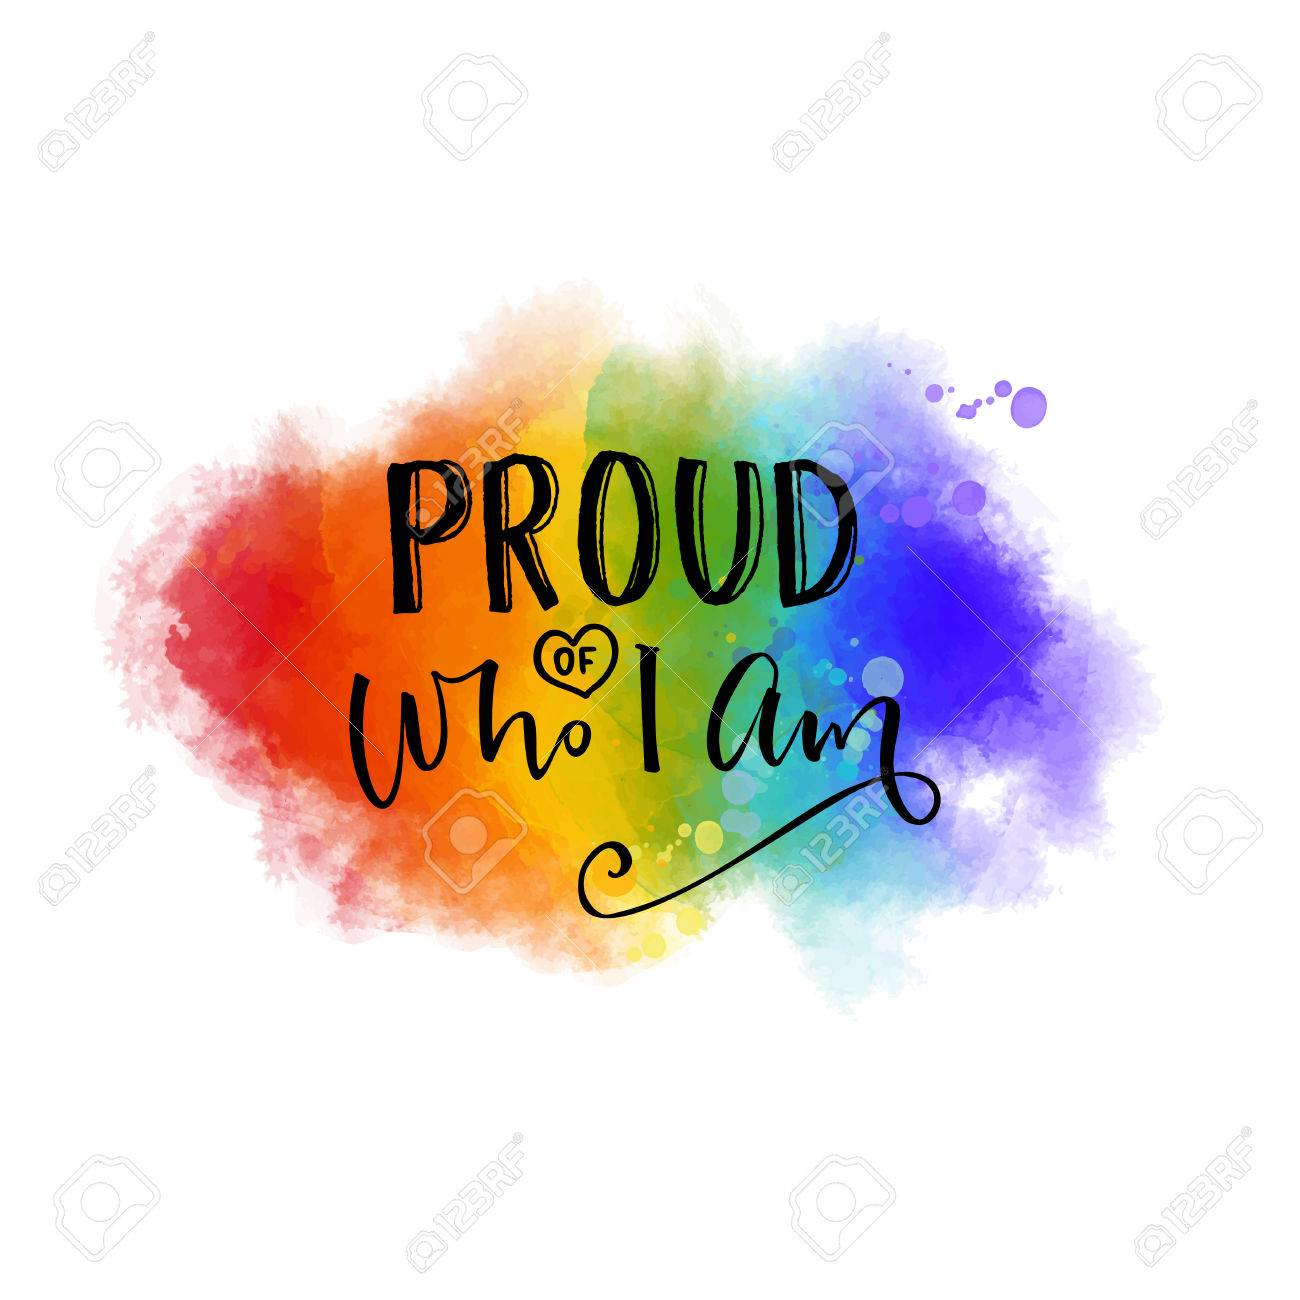 Proud of who I am. Inspiration quote. pride slogan on 6 colors rainbow texture. - 80489597